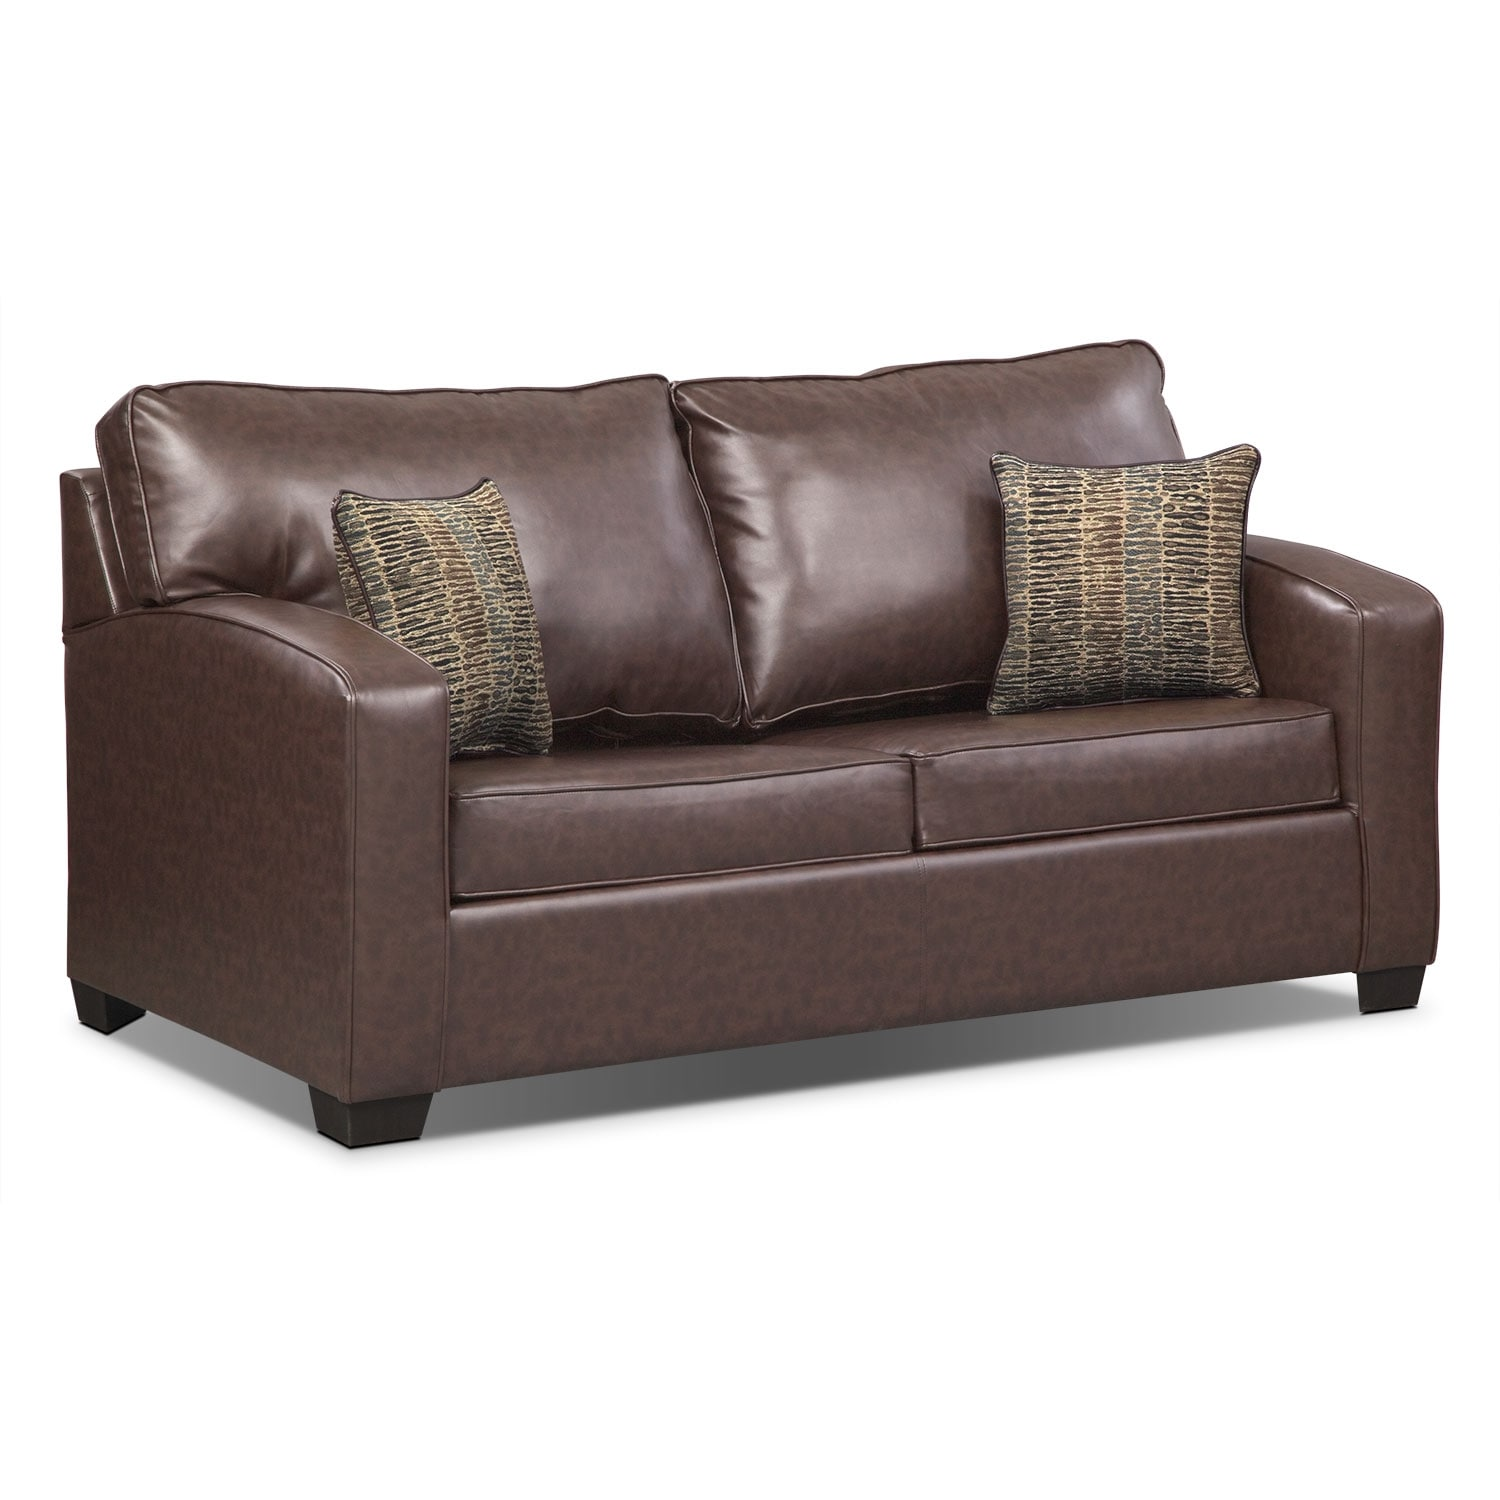 Living Room Furniture - Brookline Full Memory Foam Sleeper Sofa - Brown